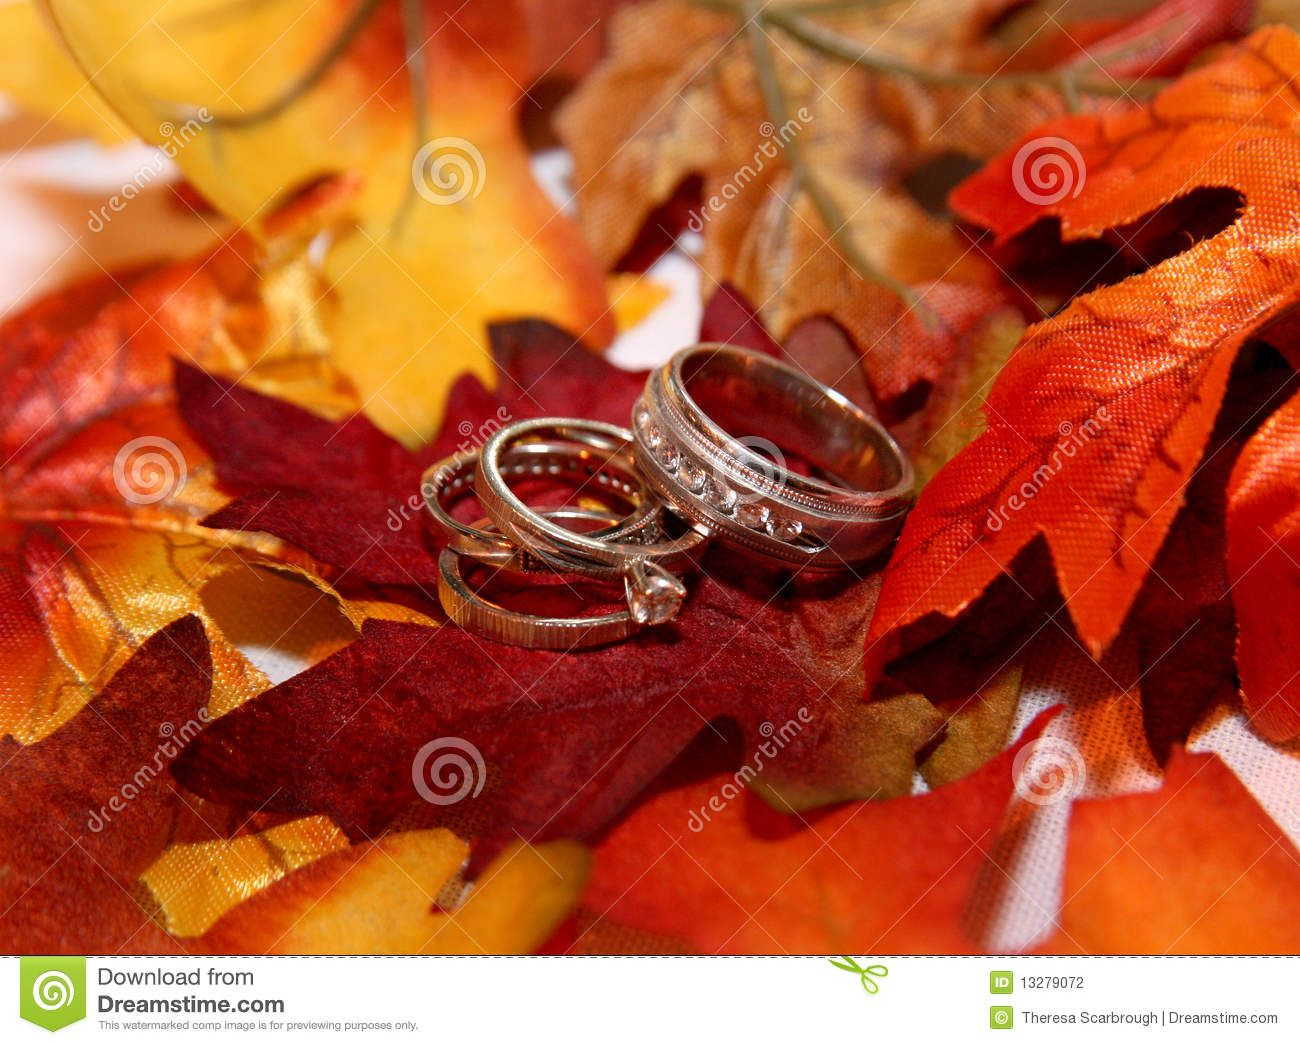 Fall Wedding Clipart Pictures Stock Photography Rings On Leaves: Country Wedding Ring Clip Art At Websimilar.org